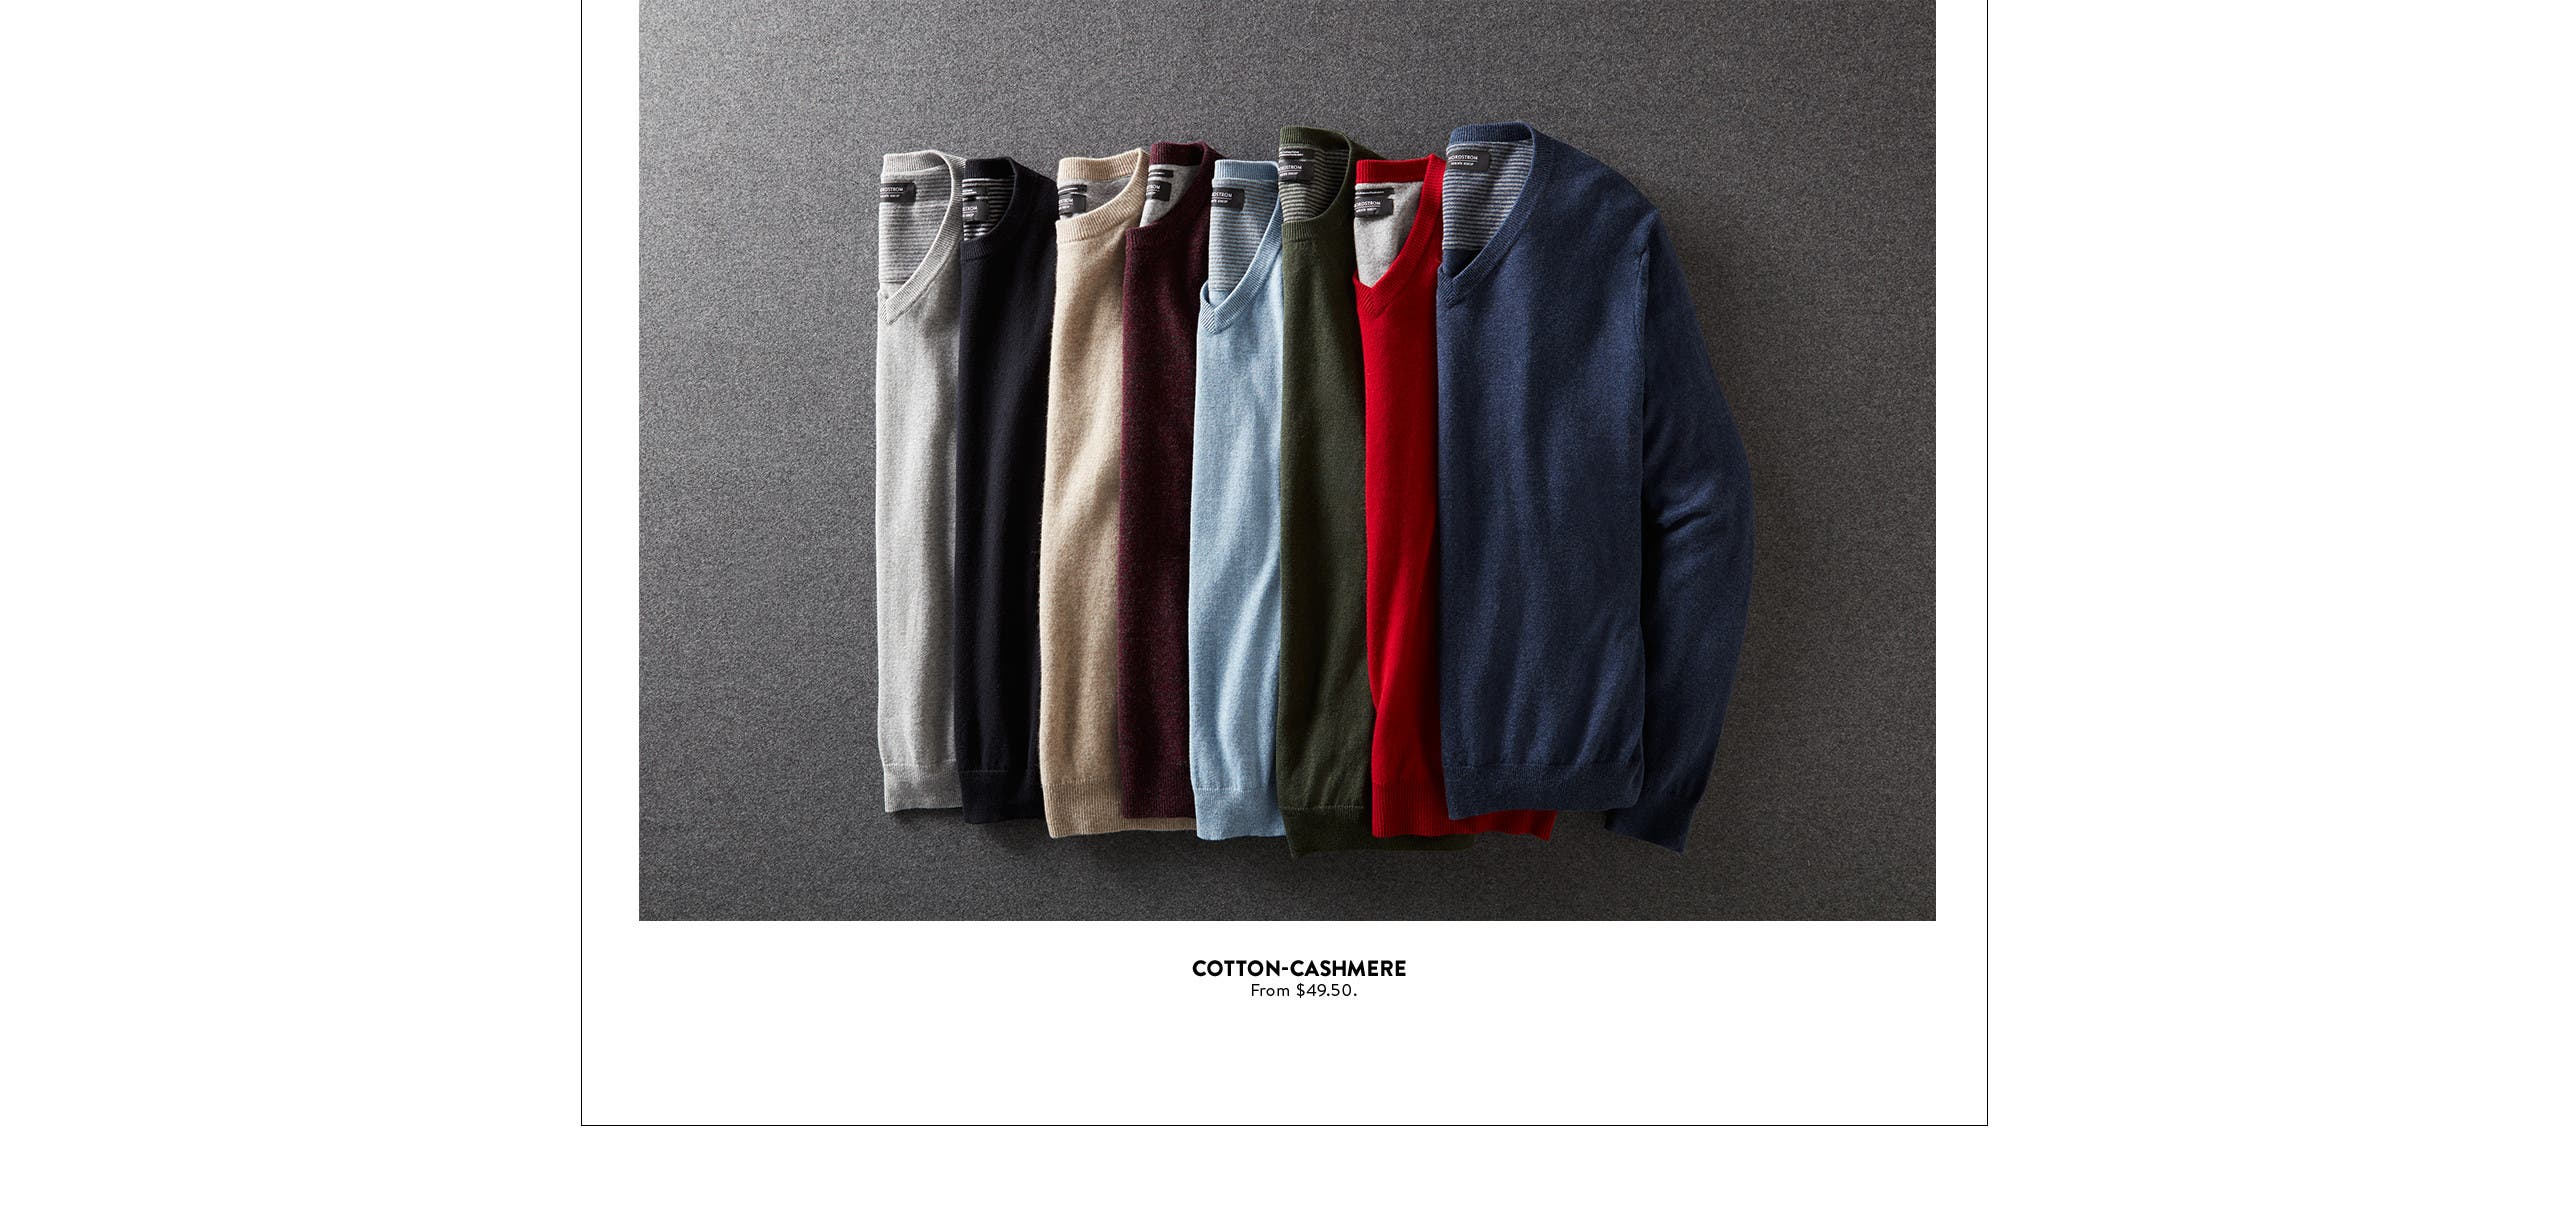 Cotton-cashmere sweaters from $59.50.